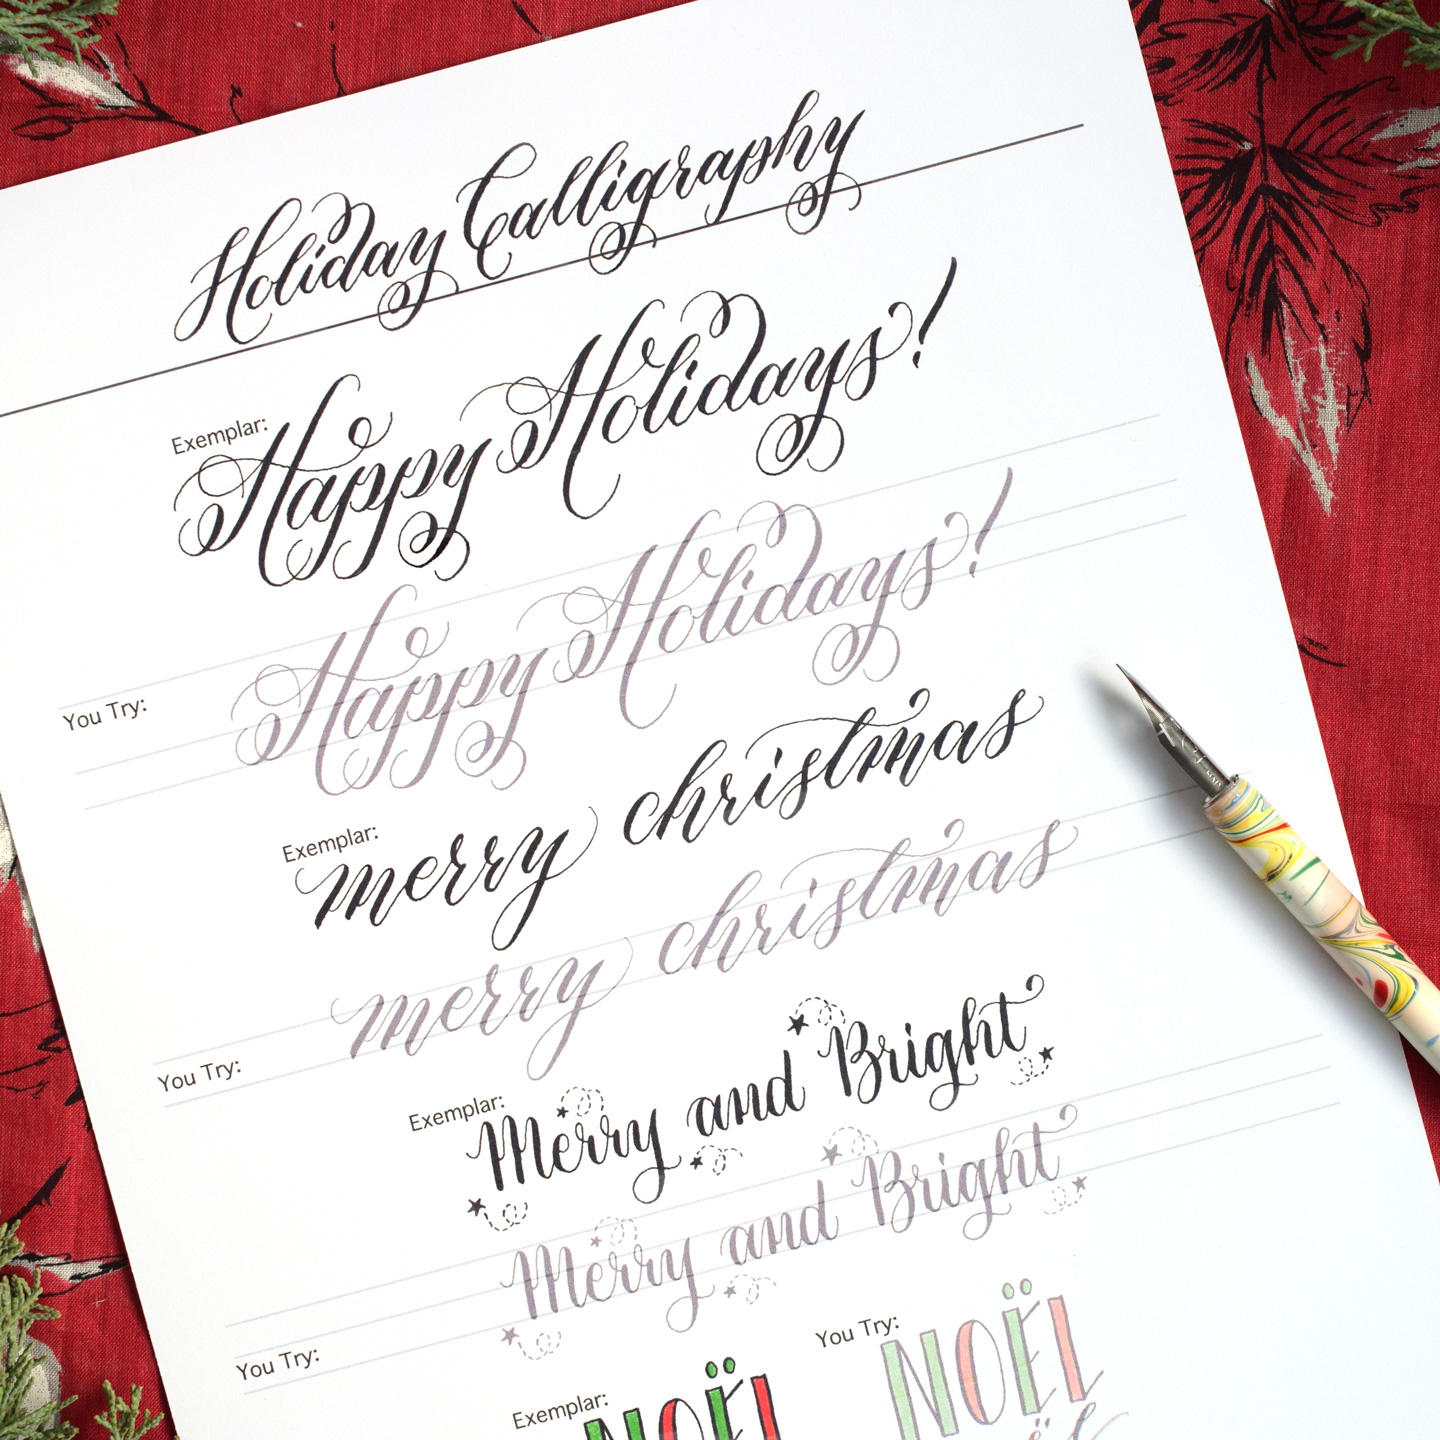 Free Holiday Calligraphy Exemplar The Postman 39 S Knock